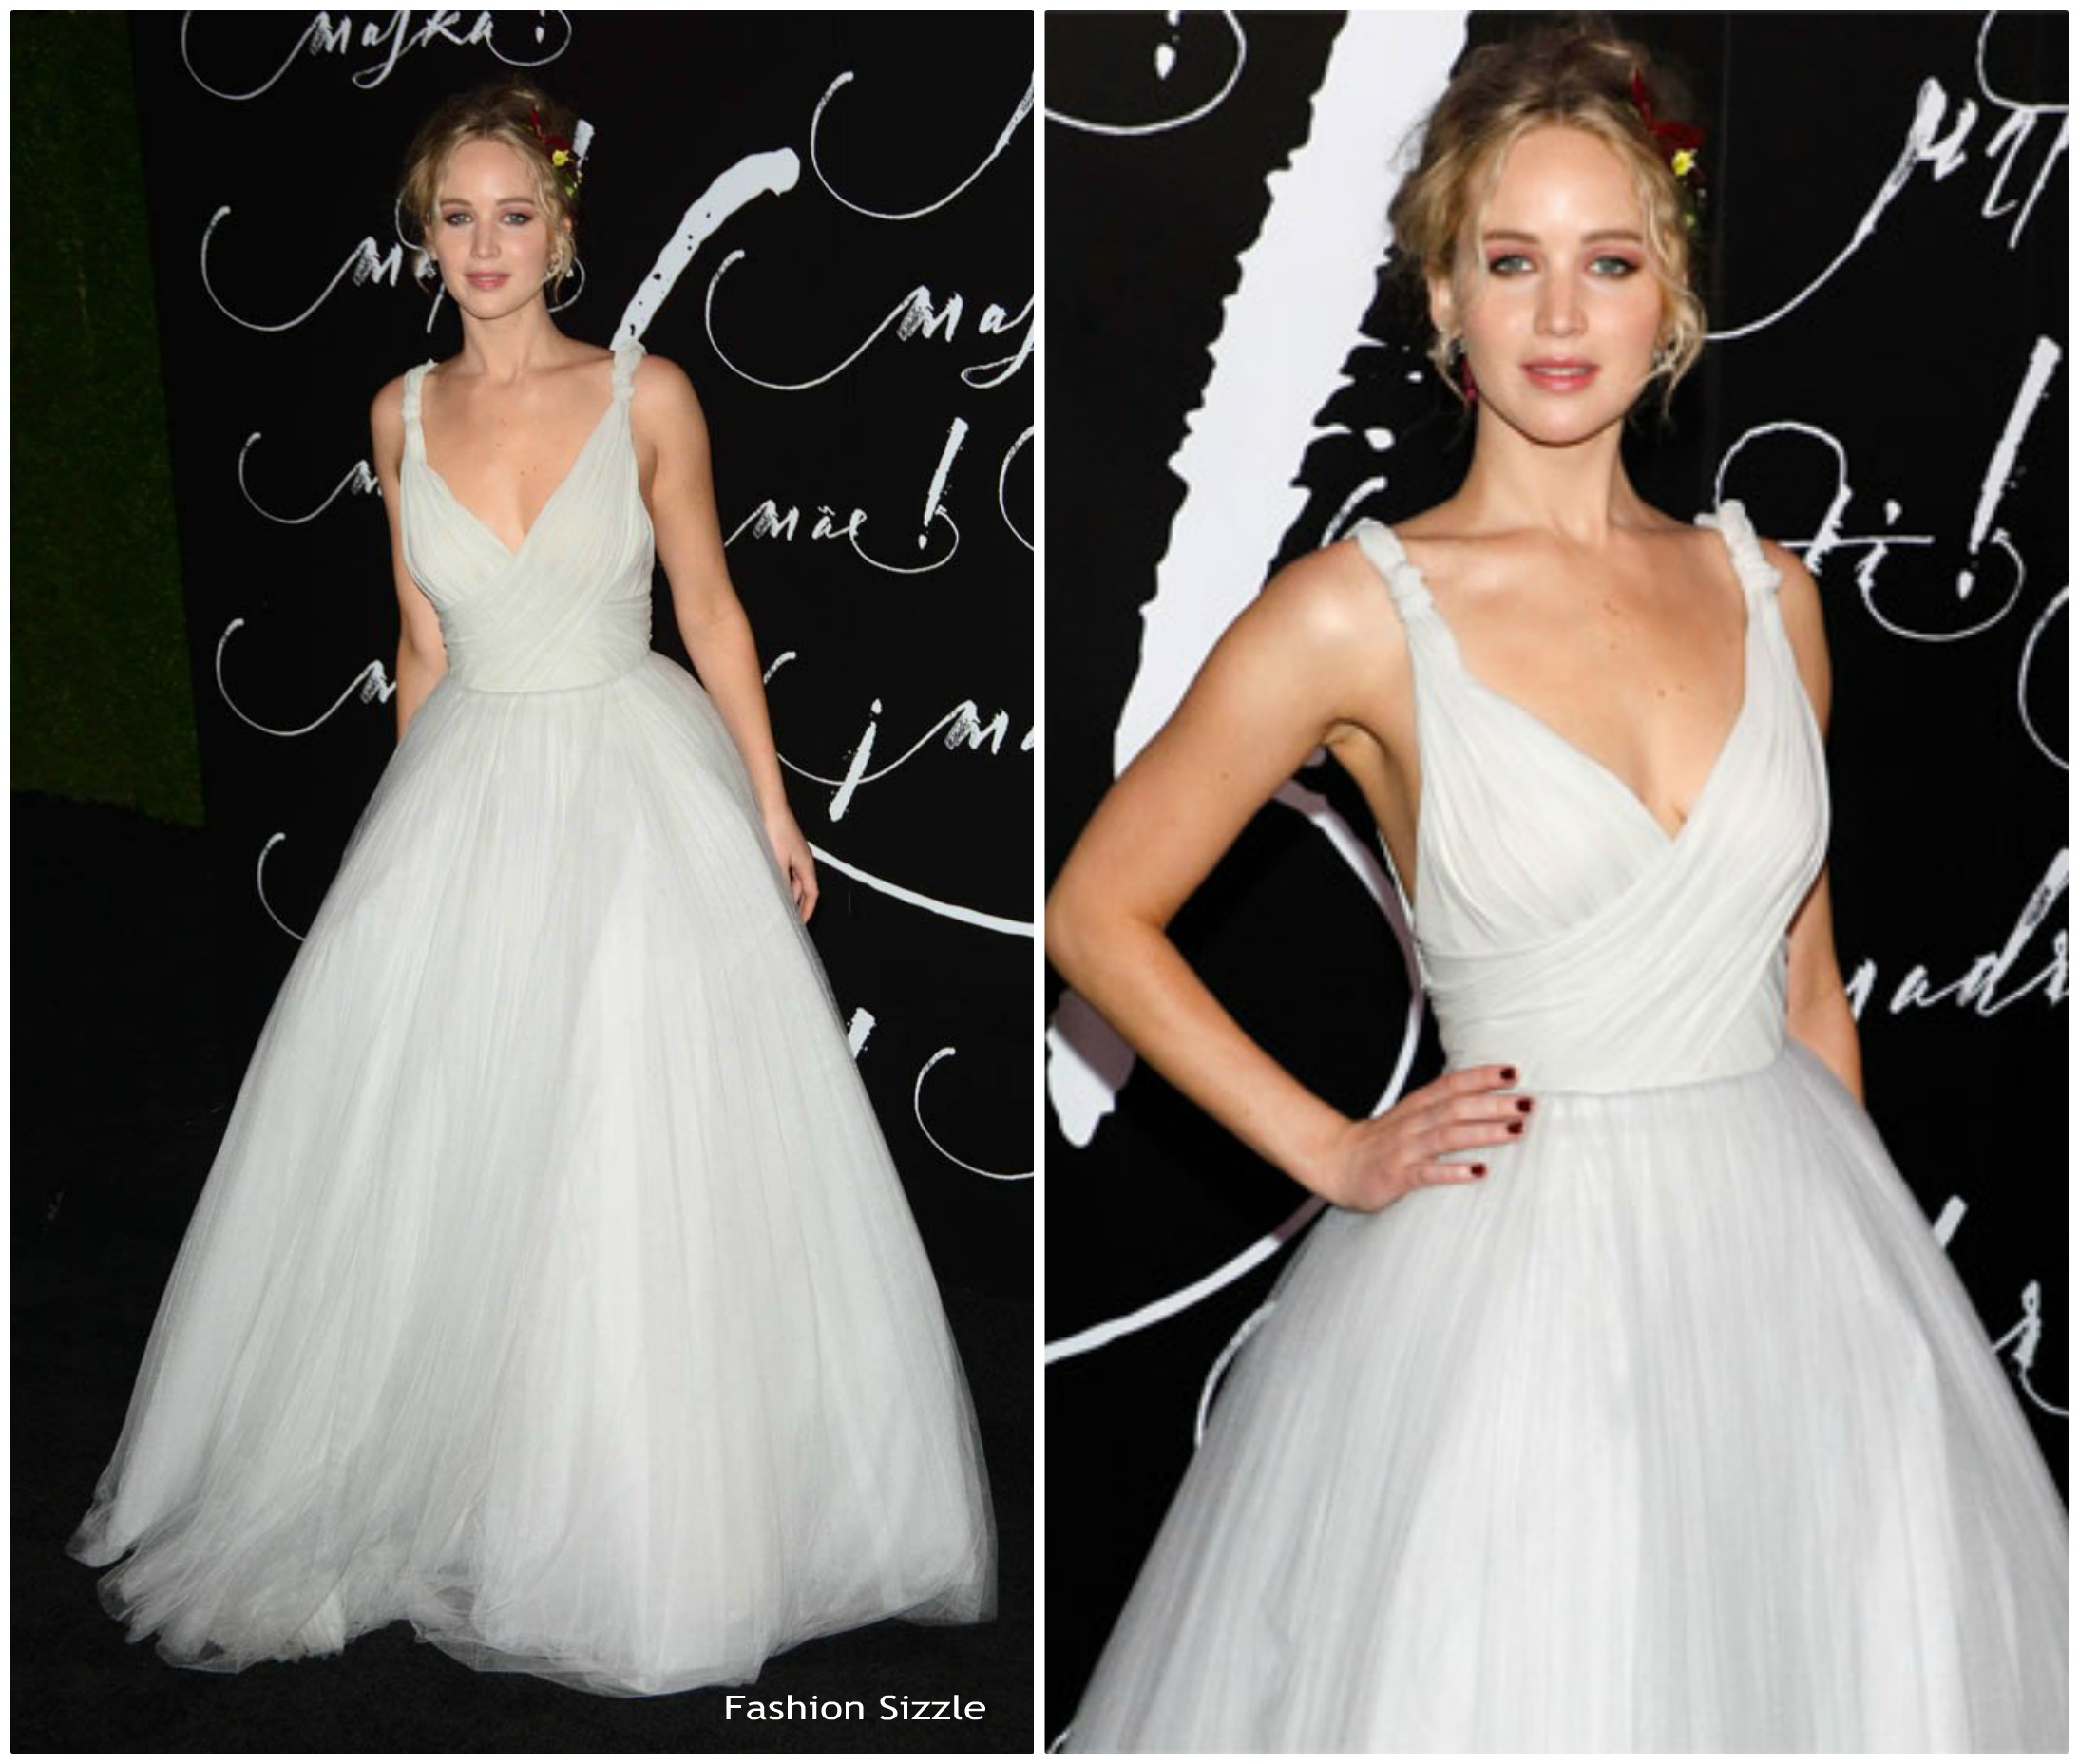 jennifer-lawerence-in-christian-dior-couture-mother-new-york-premiere